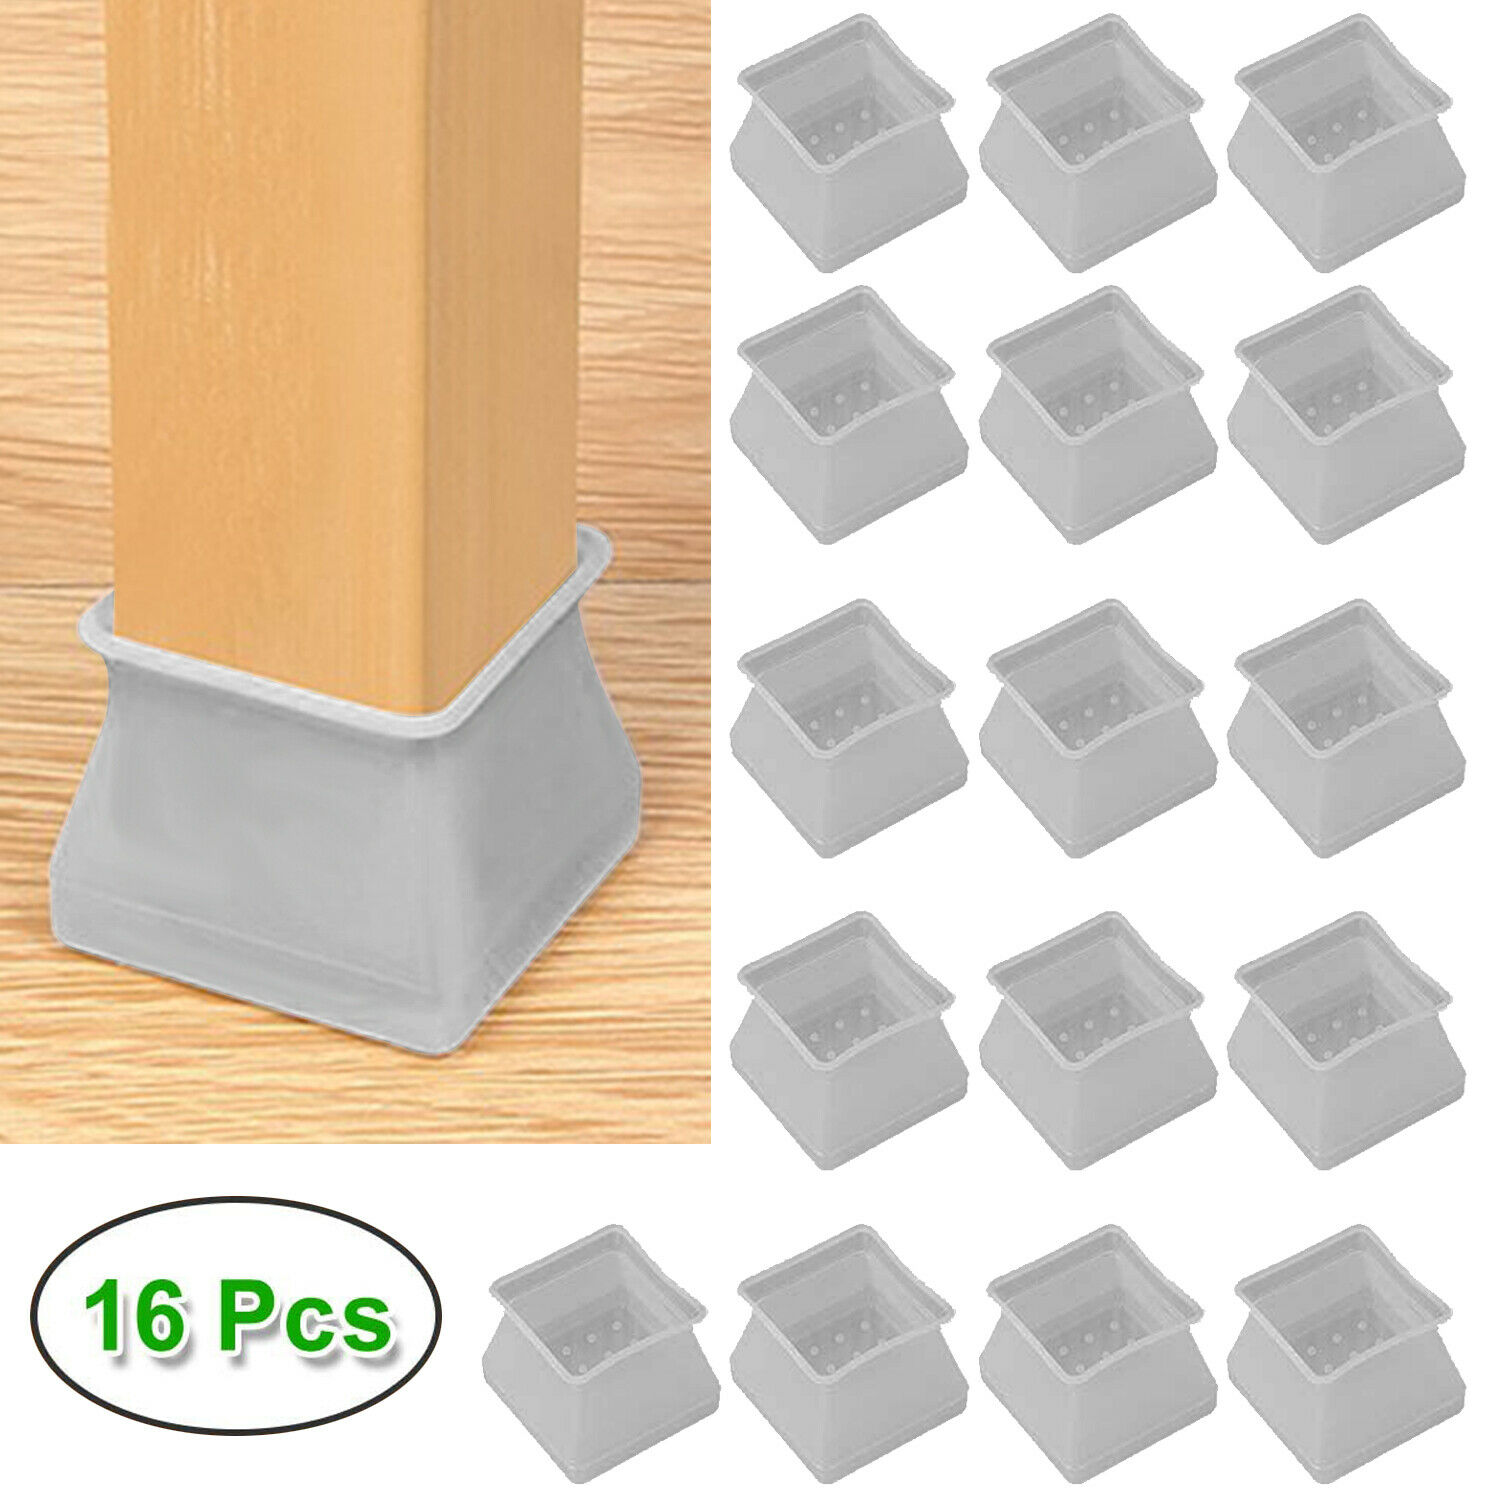 Silicone Chair Leg Caps Feet Pads Furniture Table Covers Floor Protectors